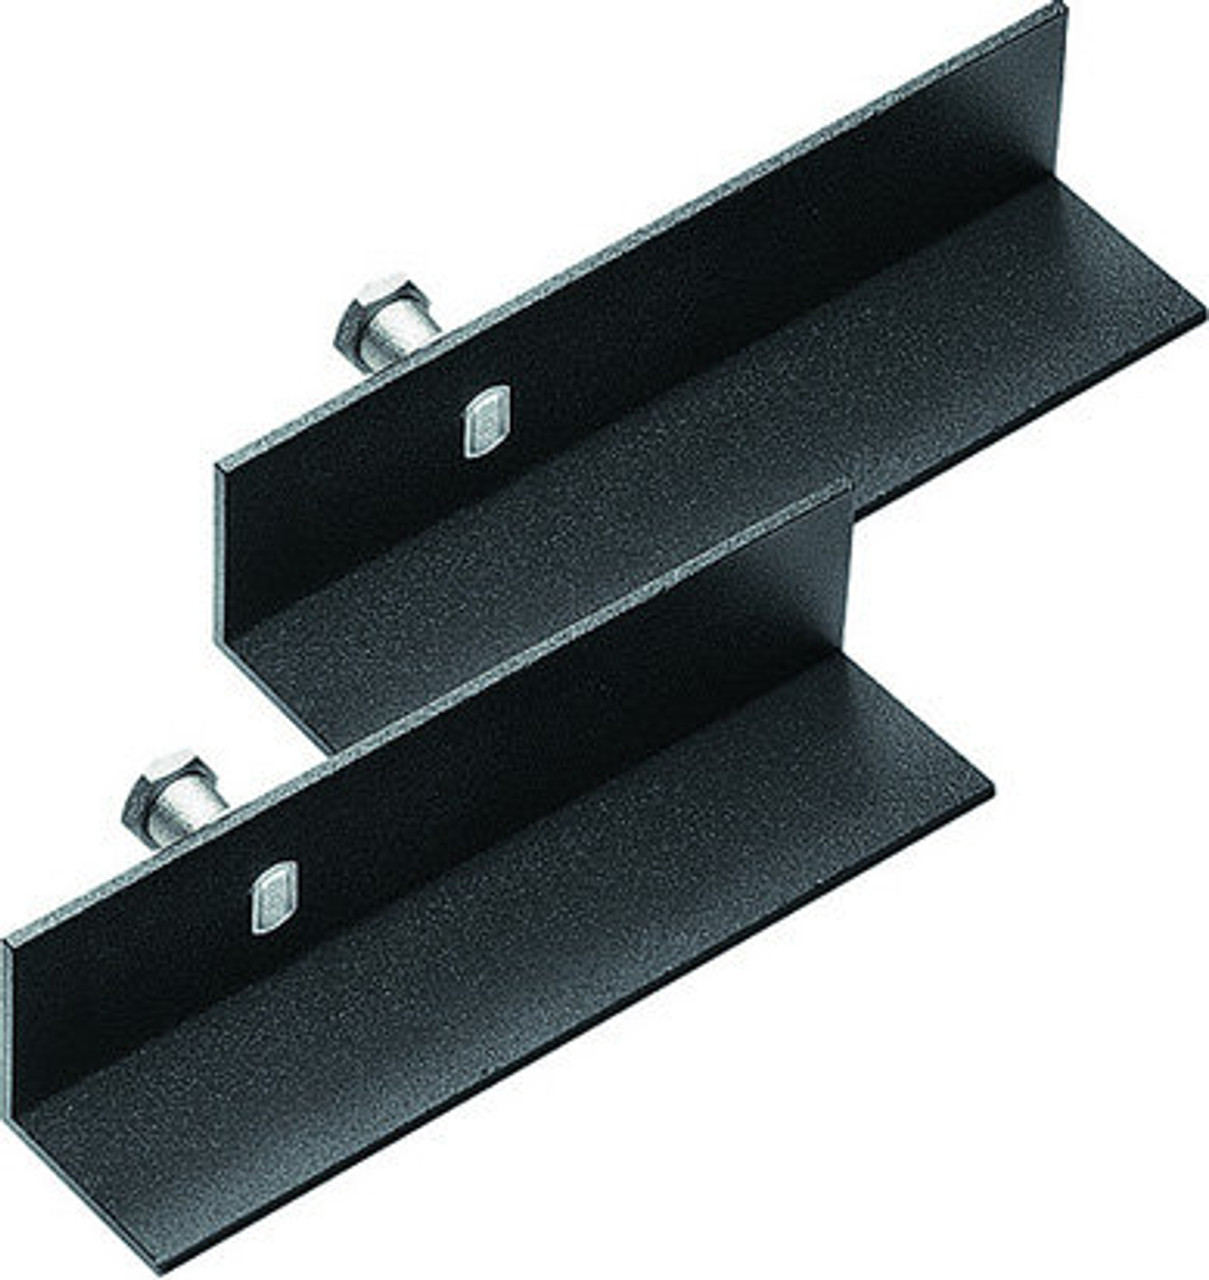 Manfrotto L-Bracket Shelf Holder Set Of 2